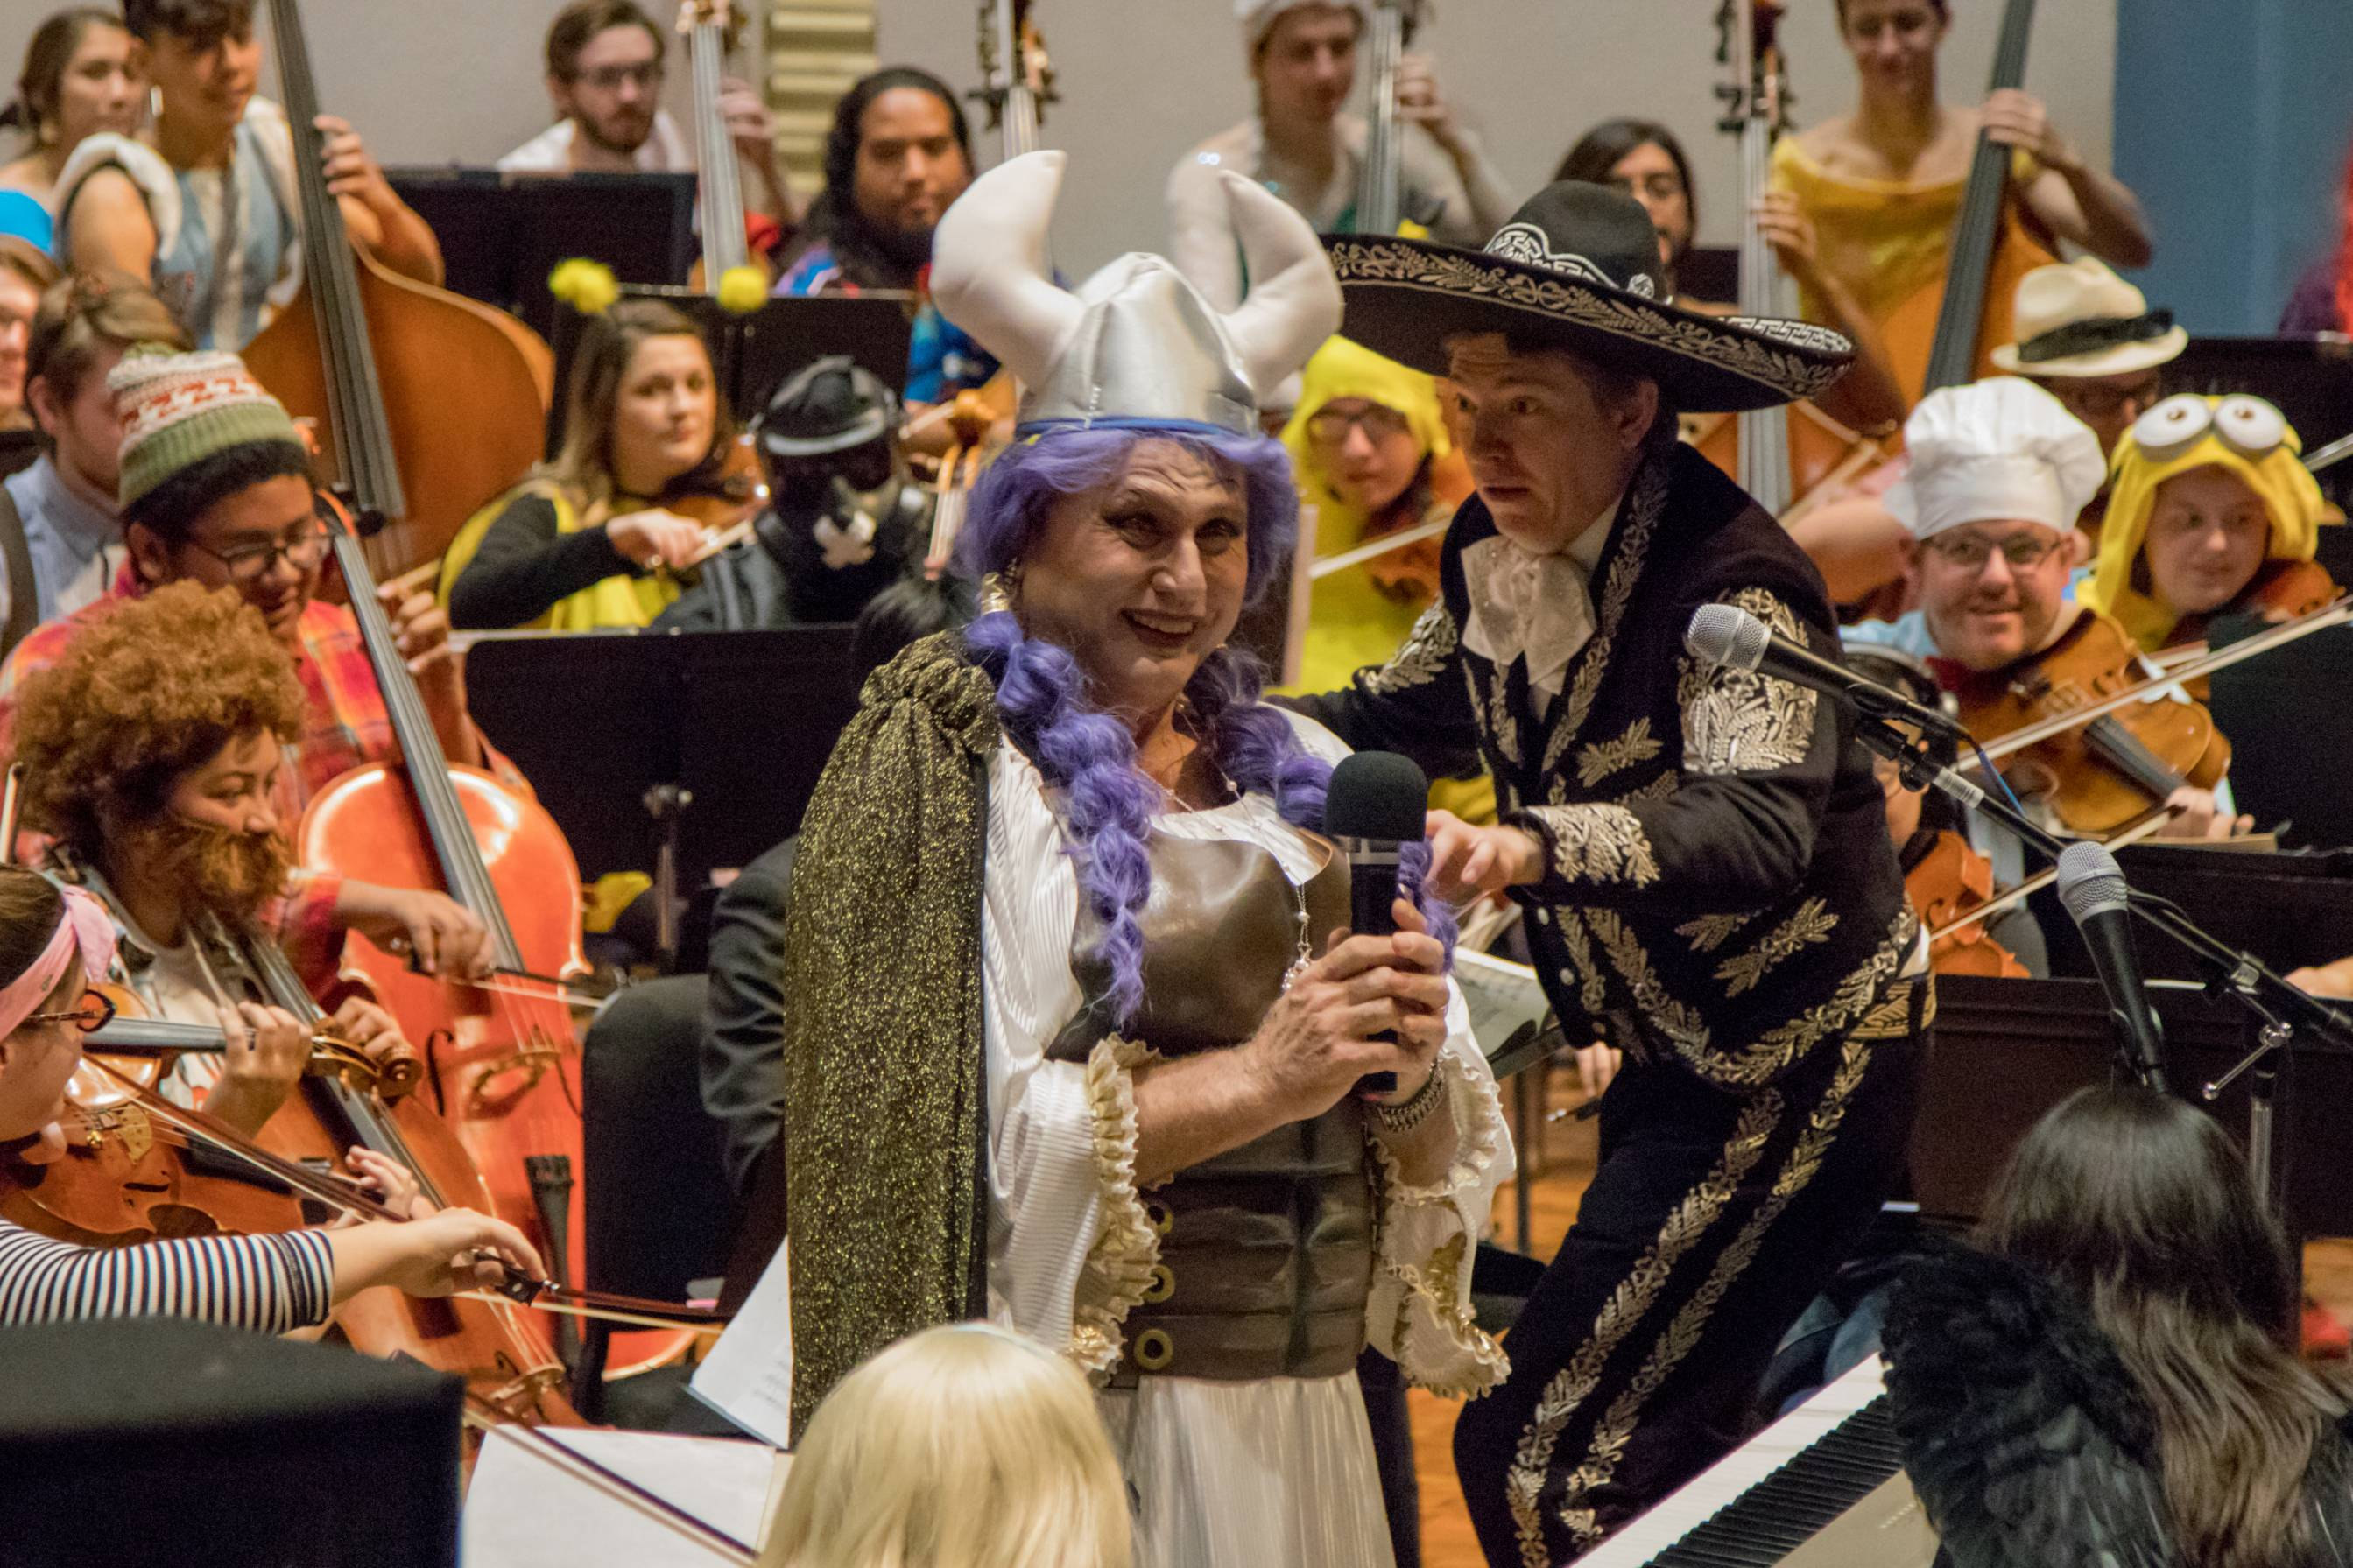 orchestra director and performer in costume